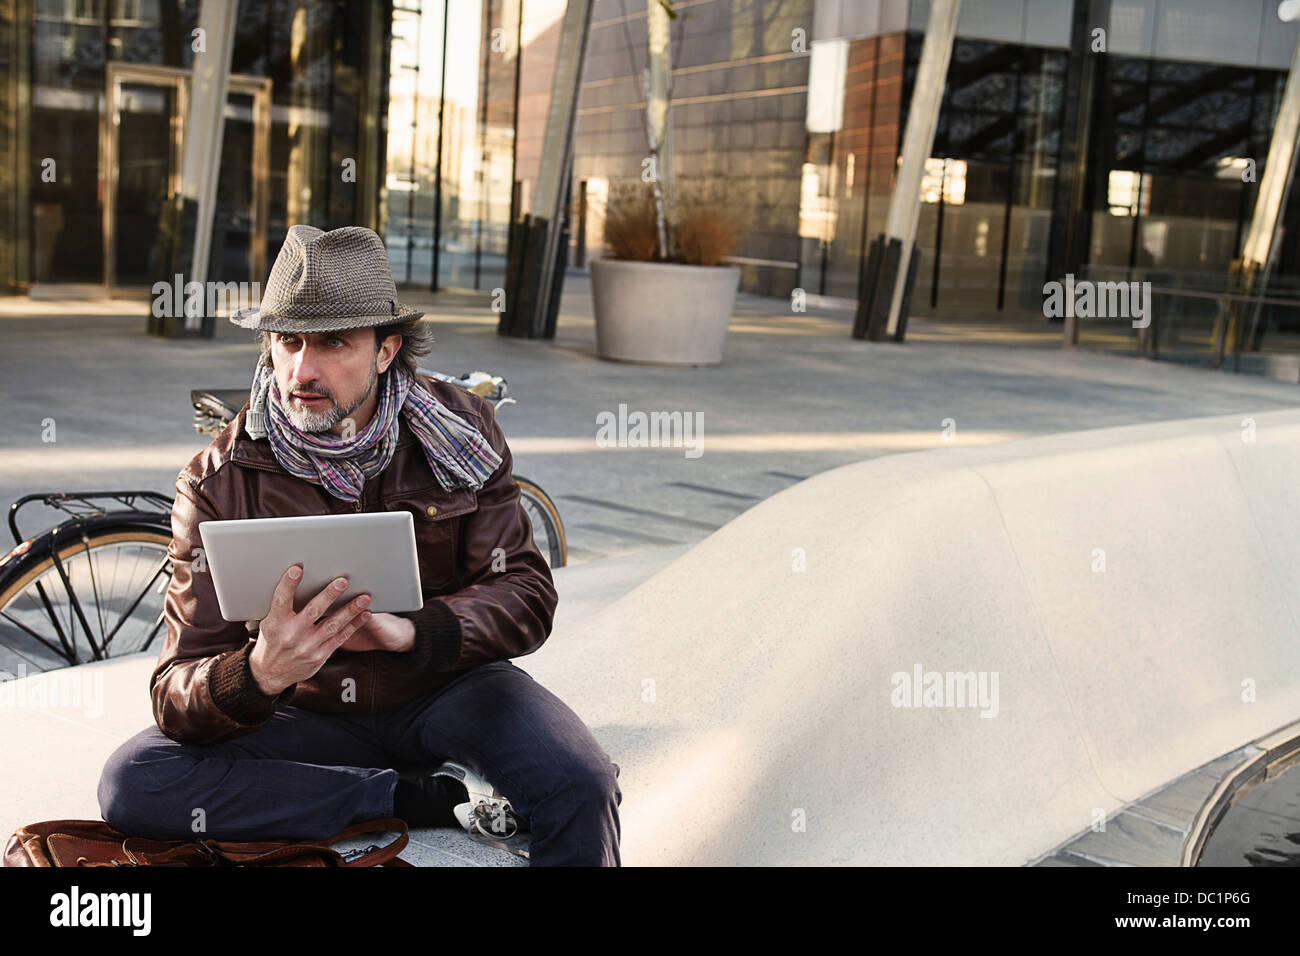 Mid adult man using digital tablet in city - Stock Image